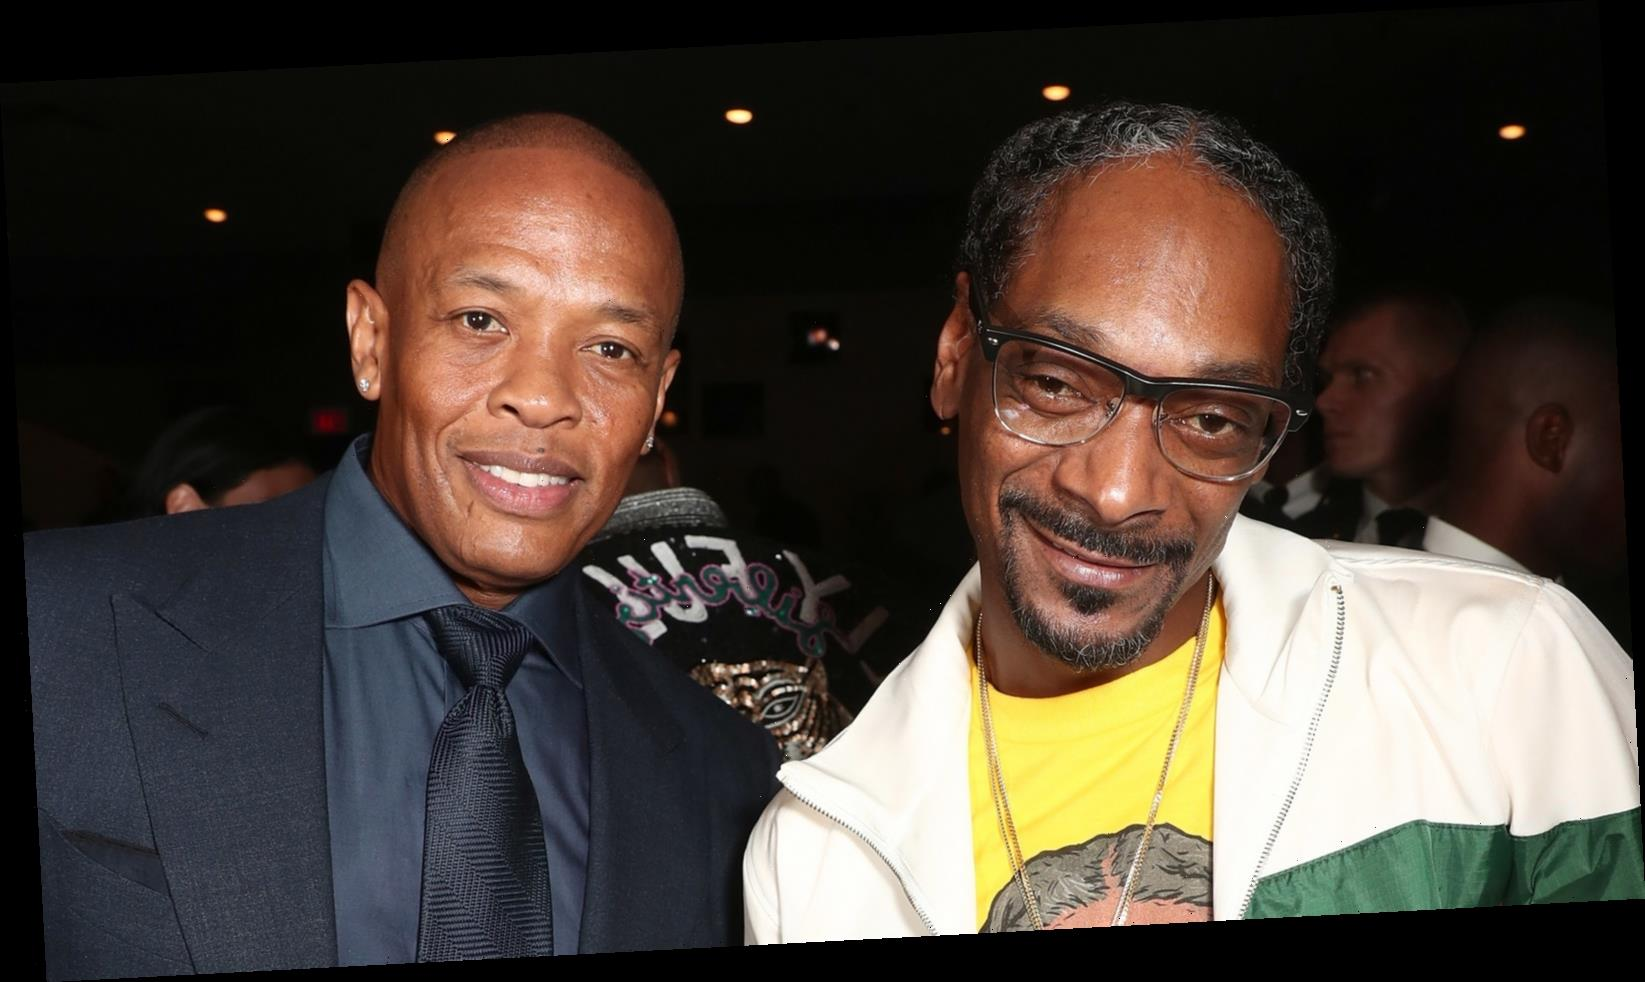 The Truth About Dr. Dre And Snoop Dogg's Relationship